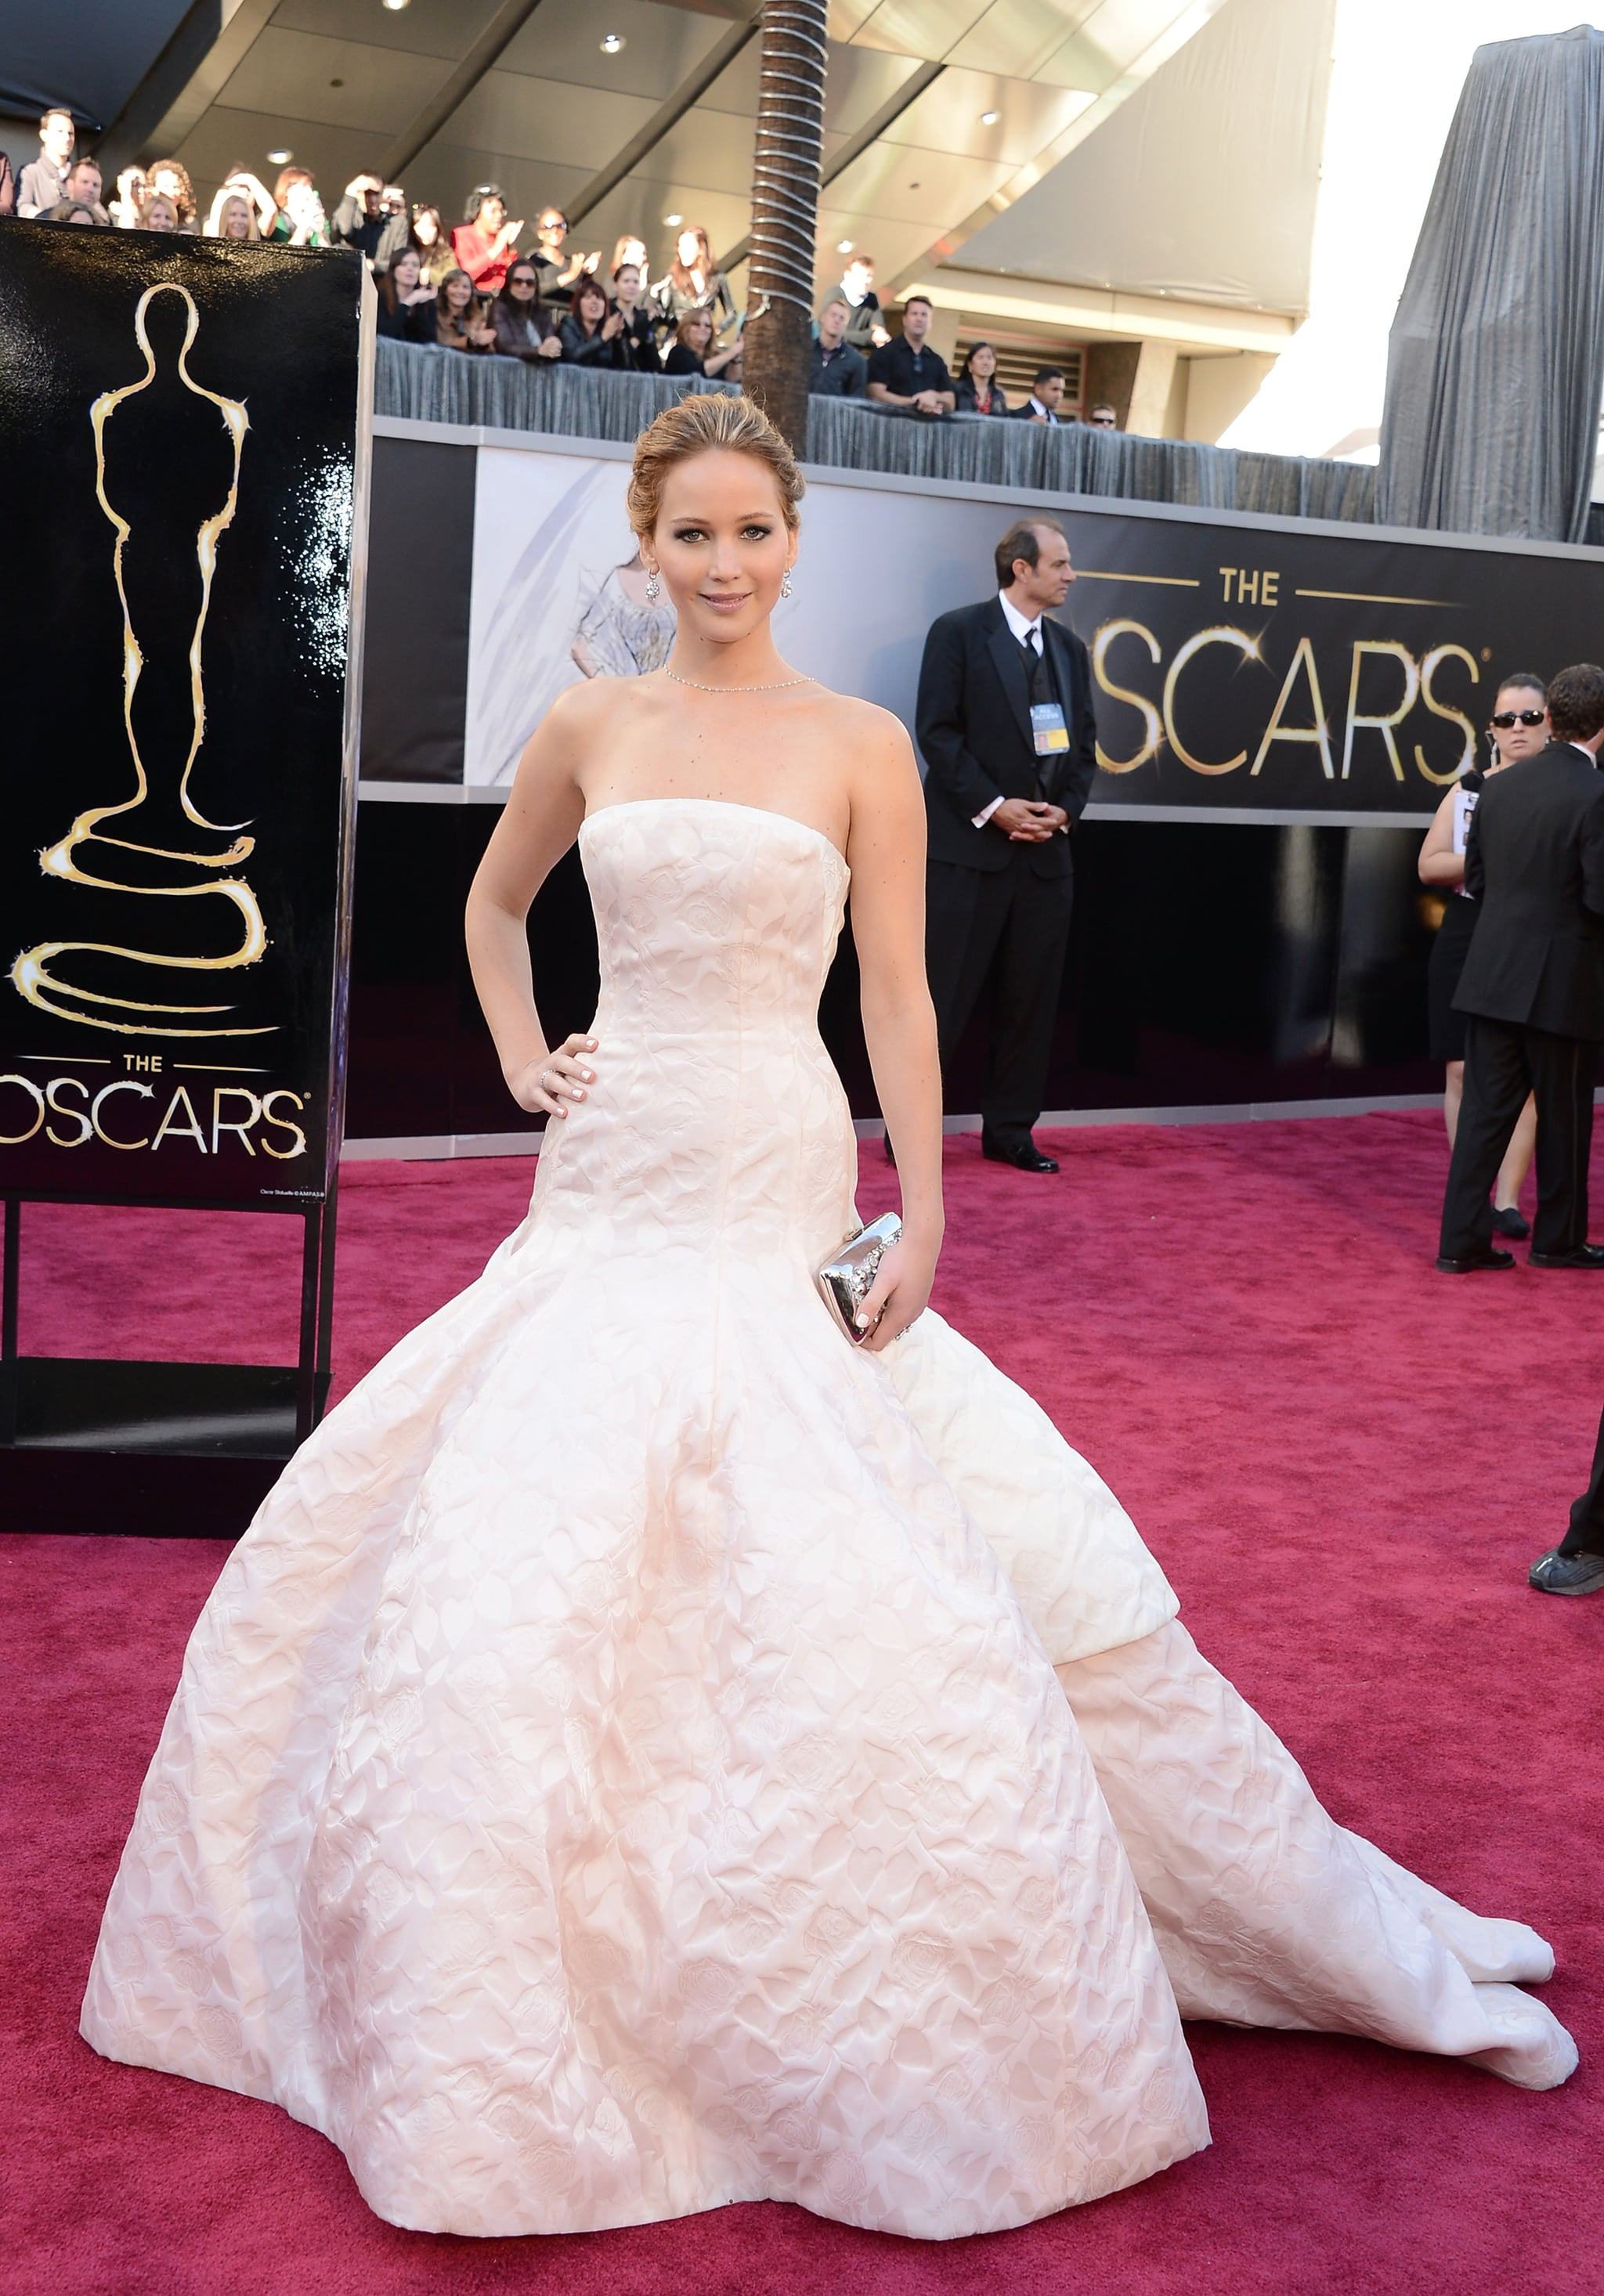 Who could forget this showstopper of an Oscars dress? Jennifer Lawrence stunned us all in Christian Dior Couture.